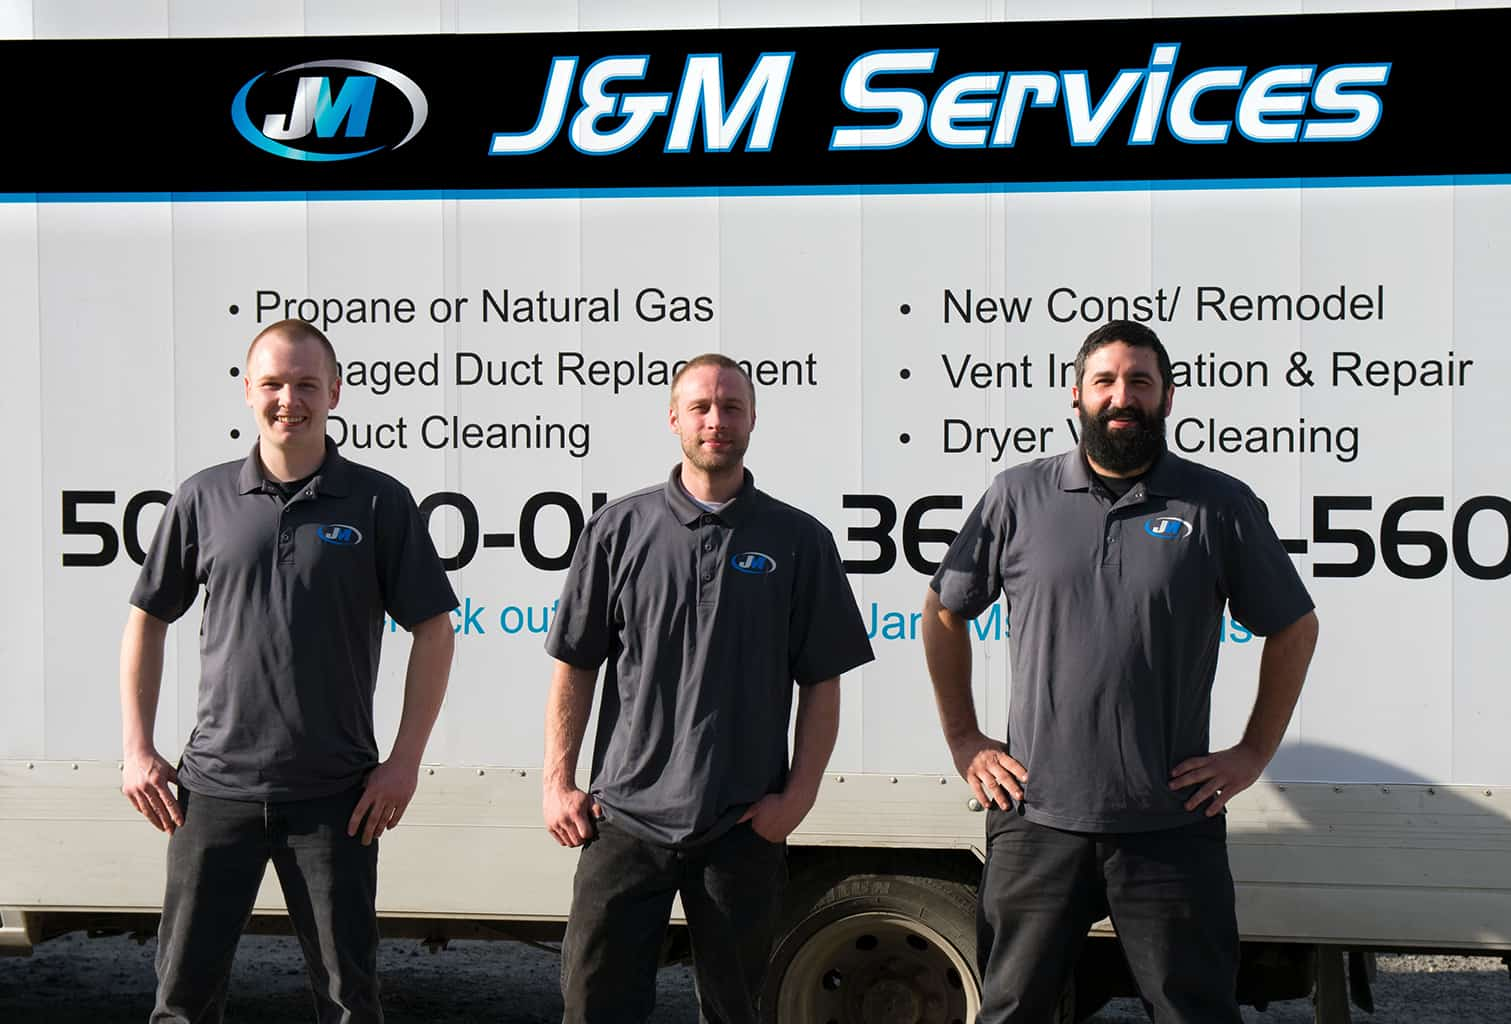 J&M Services Trained Gas Line Installation Technicians in Portland Oregon